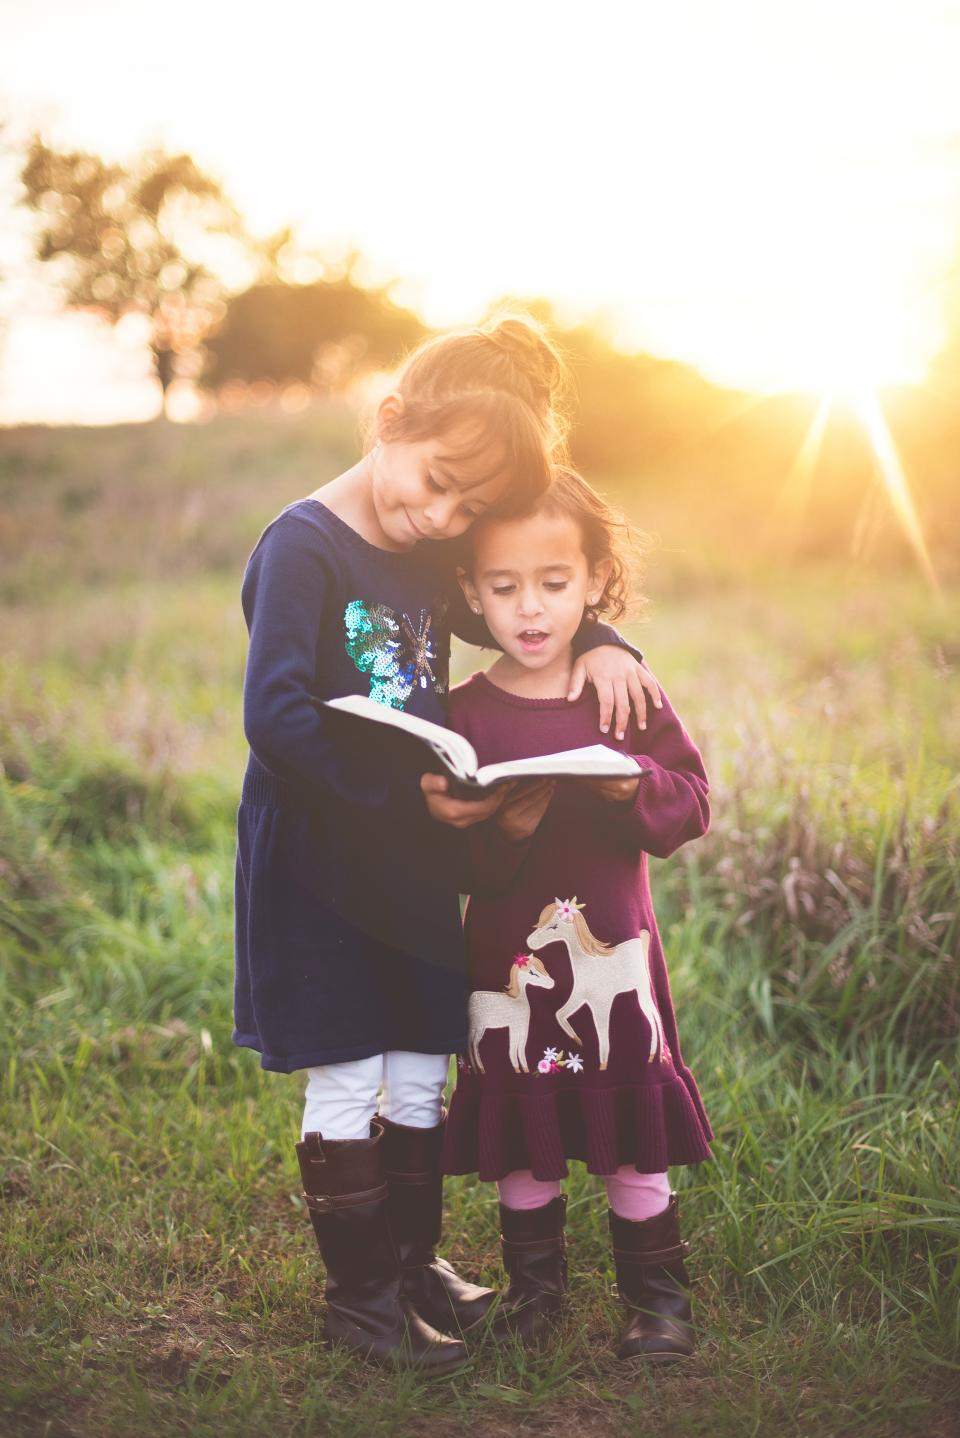 sunlight sunshine sunset sunrise sunny grass tree nature kids girls people children reading book bible sky